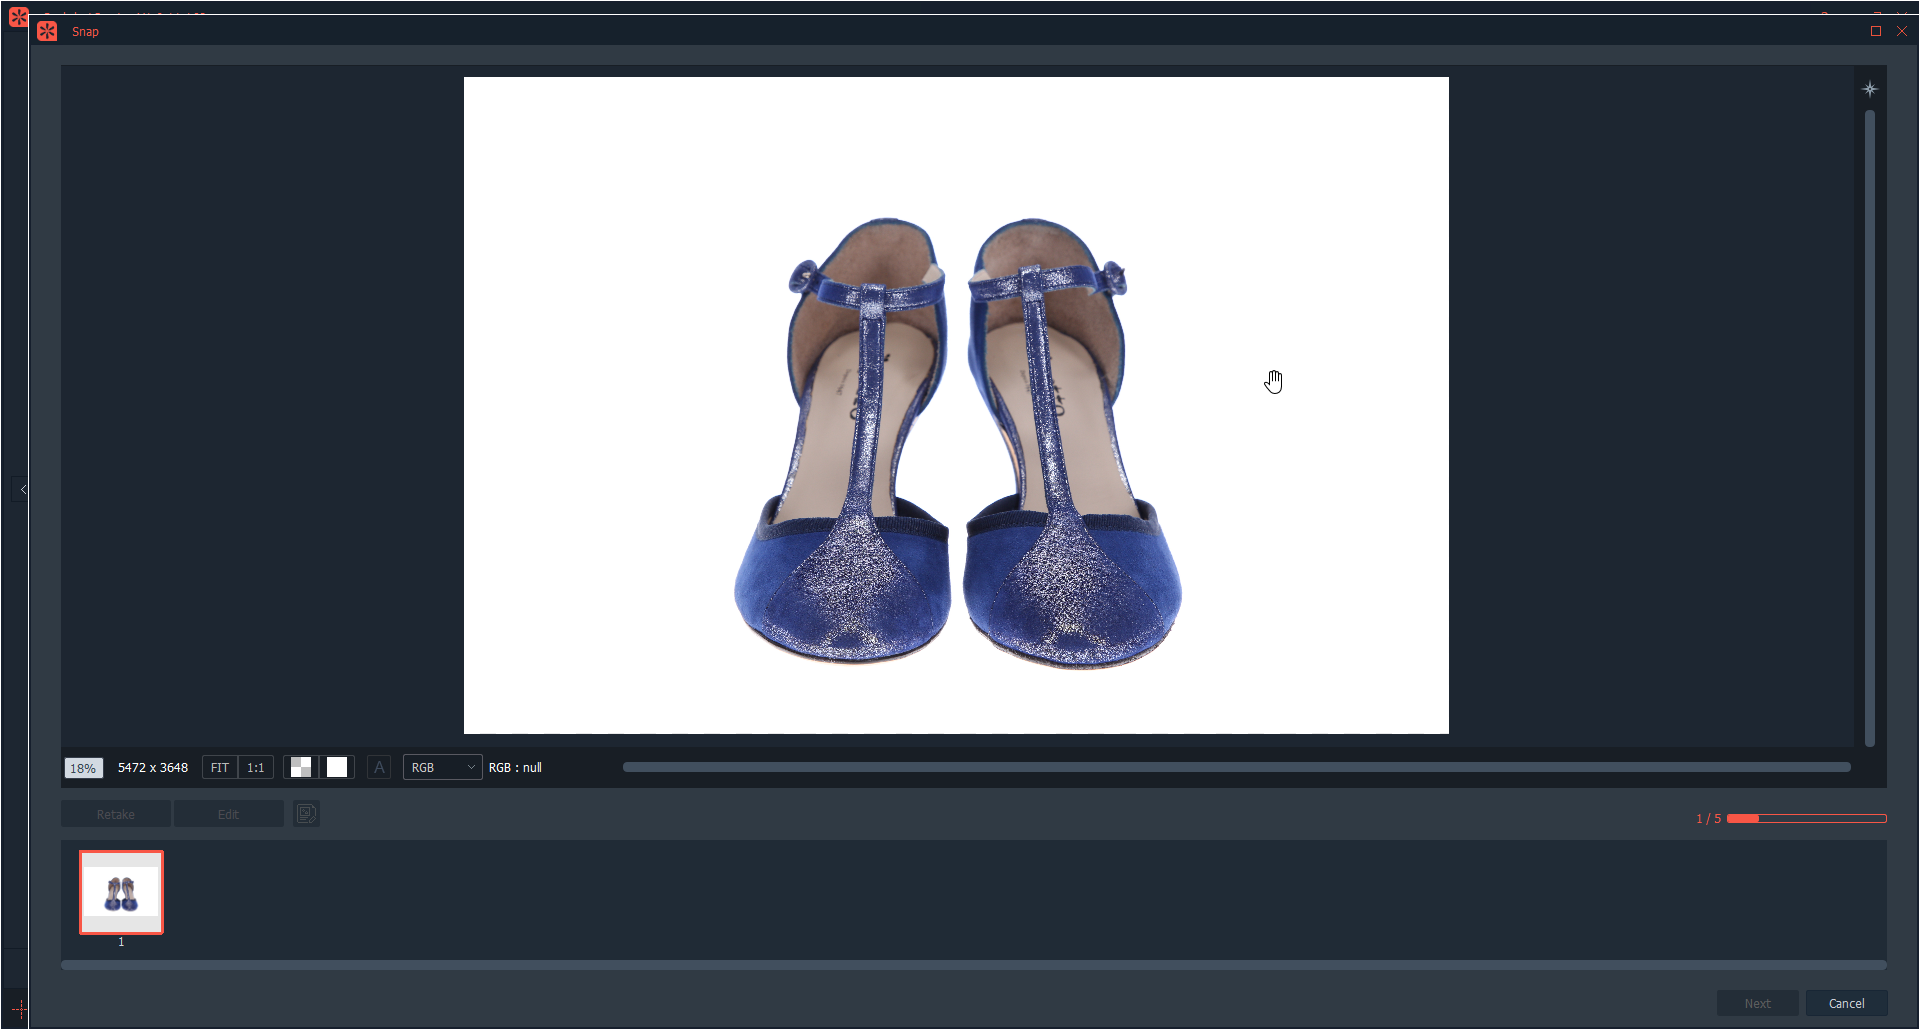 Multi angle customed defined for shoes photography